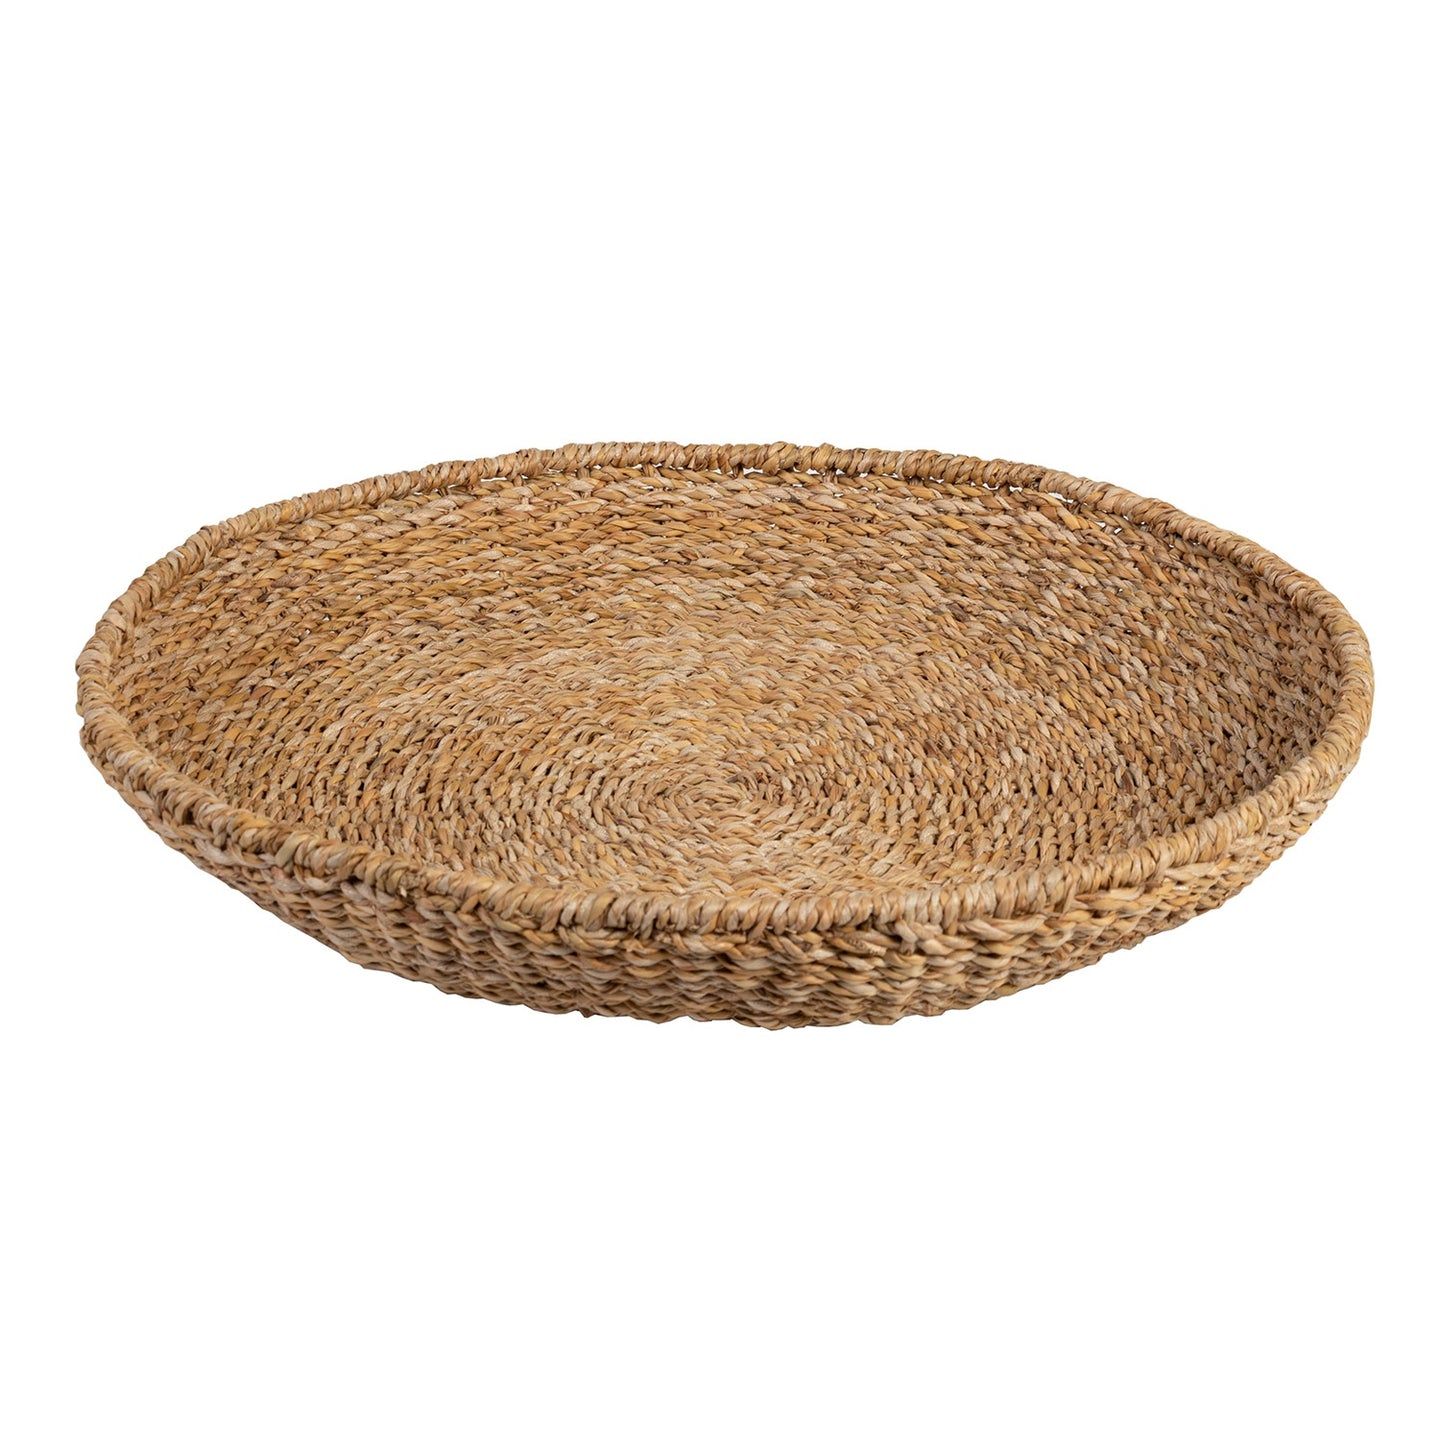 Seagrass Tray Round - Natural